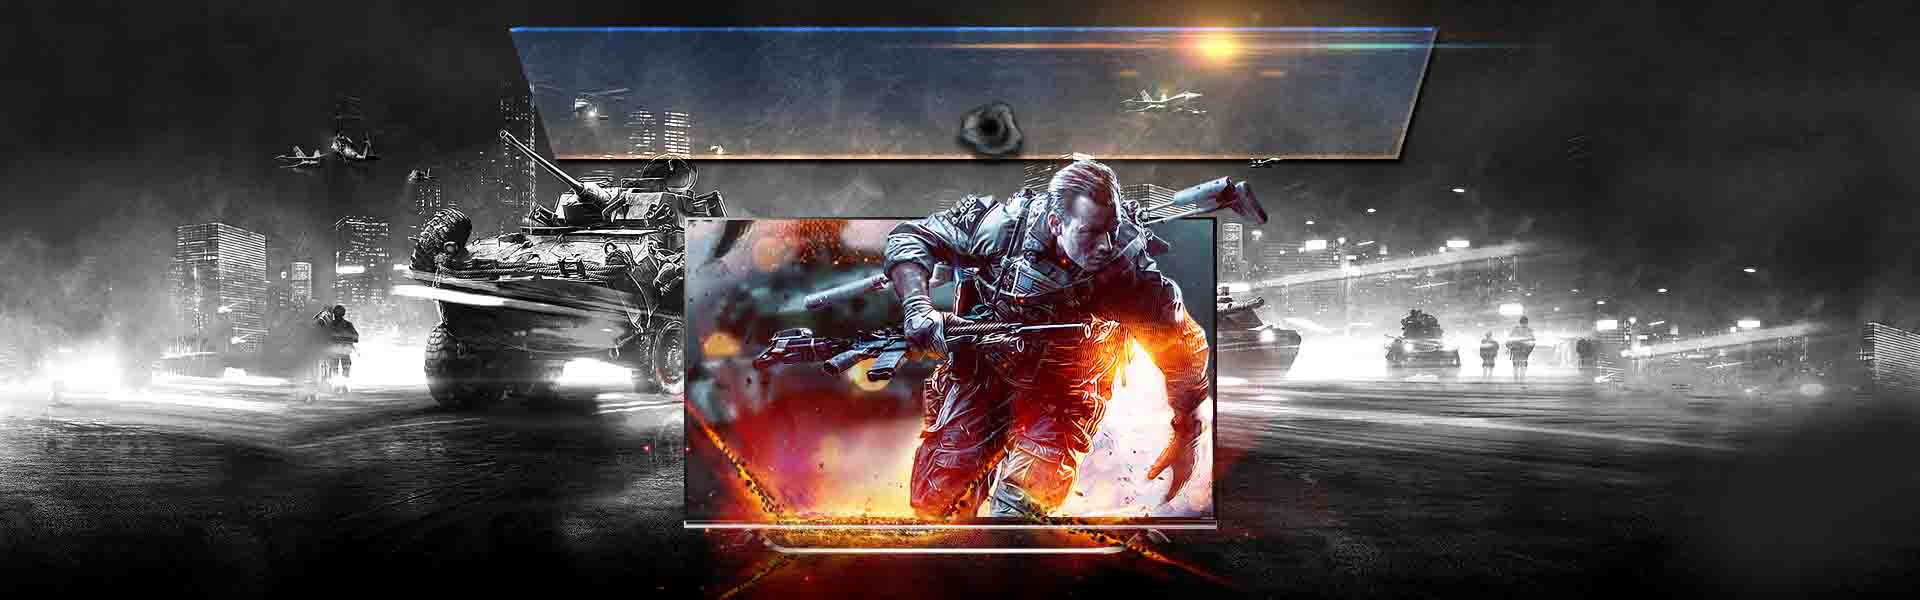 Best Gaming Monitor Under 200 USD For 2019 – Buyer's Guide and Monitor Reviews